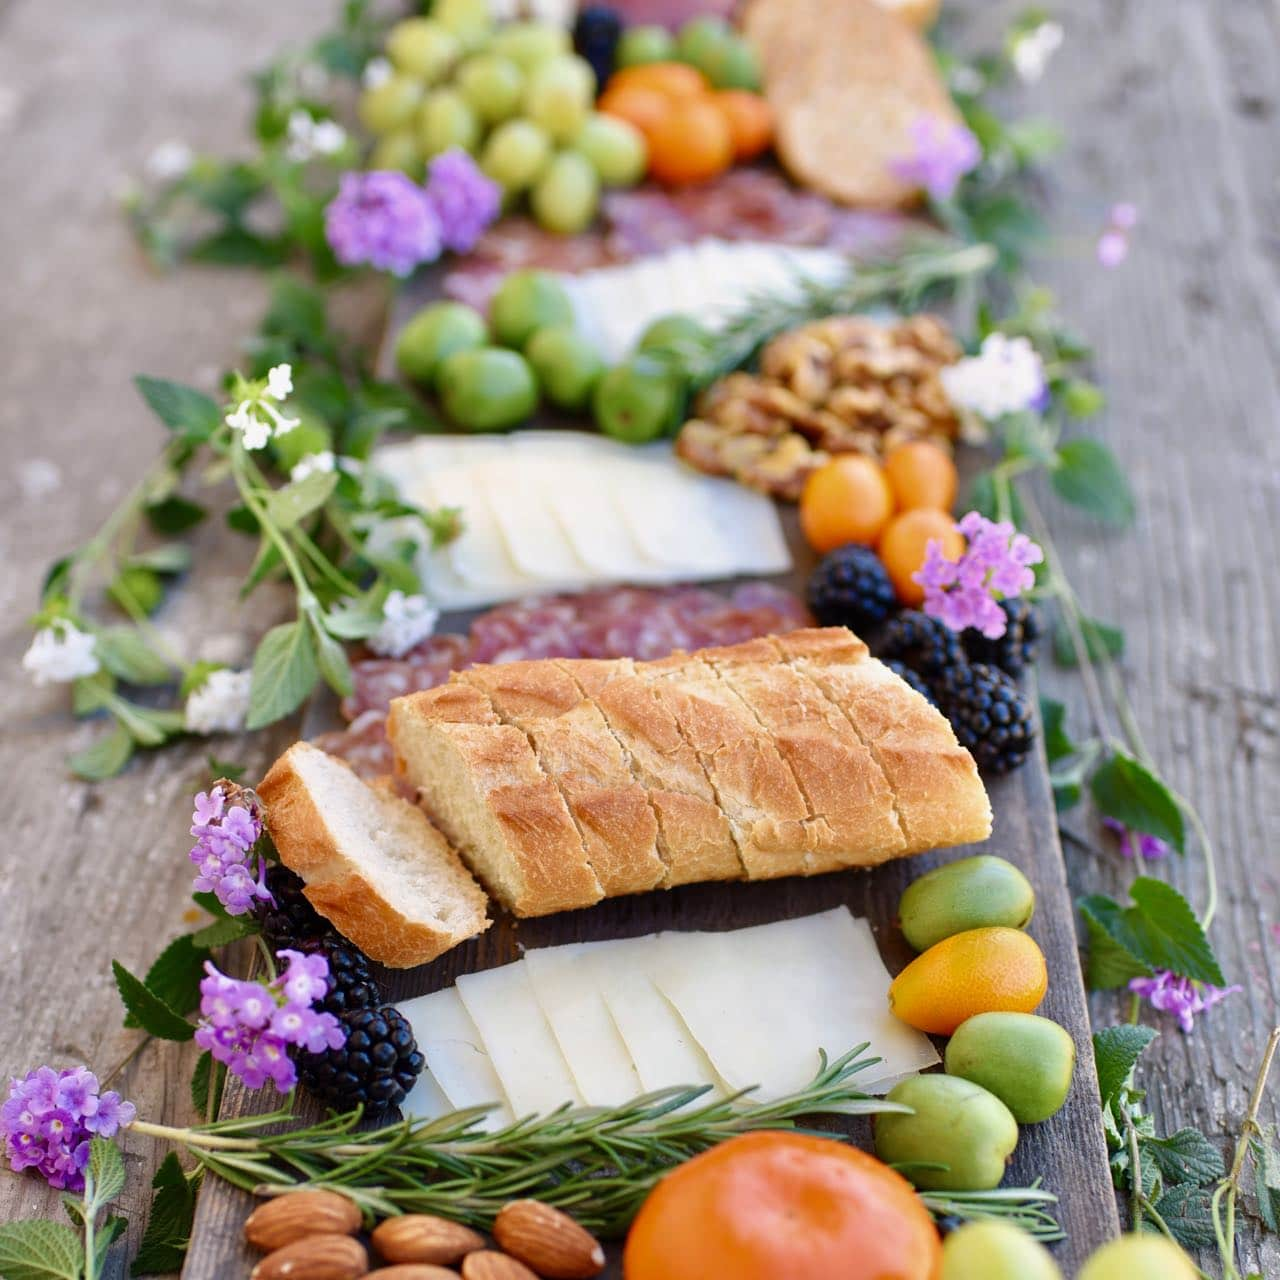 How to make a charcuterie and cheese plate & How to Create A Charcuterie and Cheese Plate - Make Life Lovely